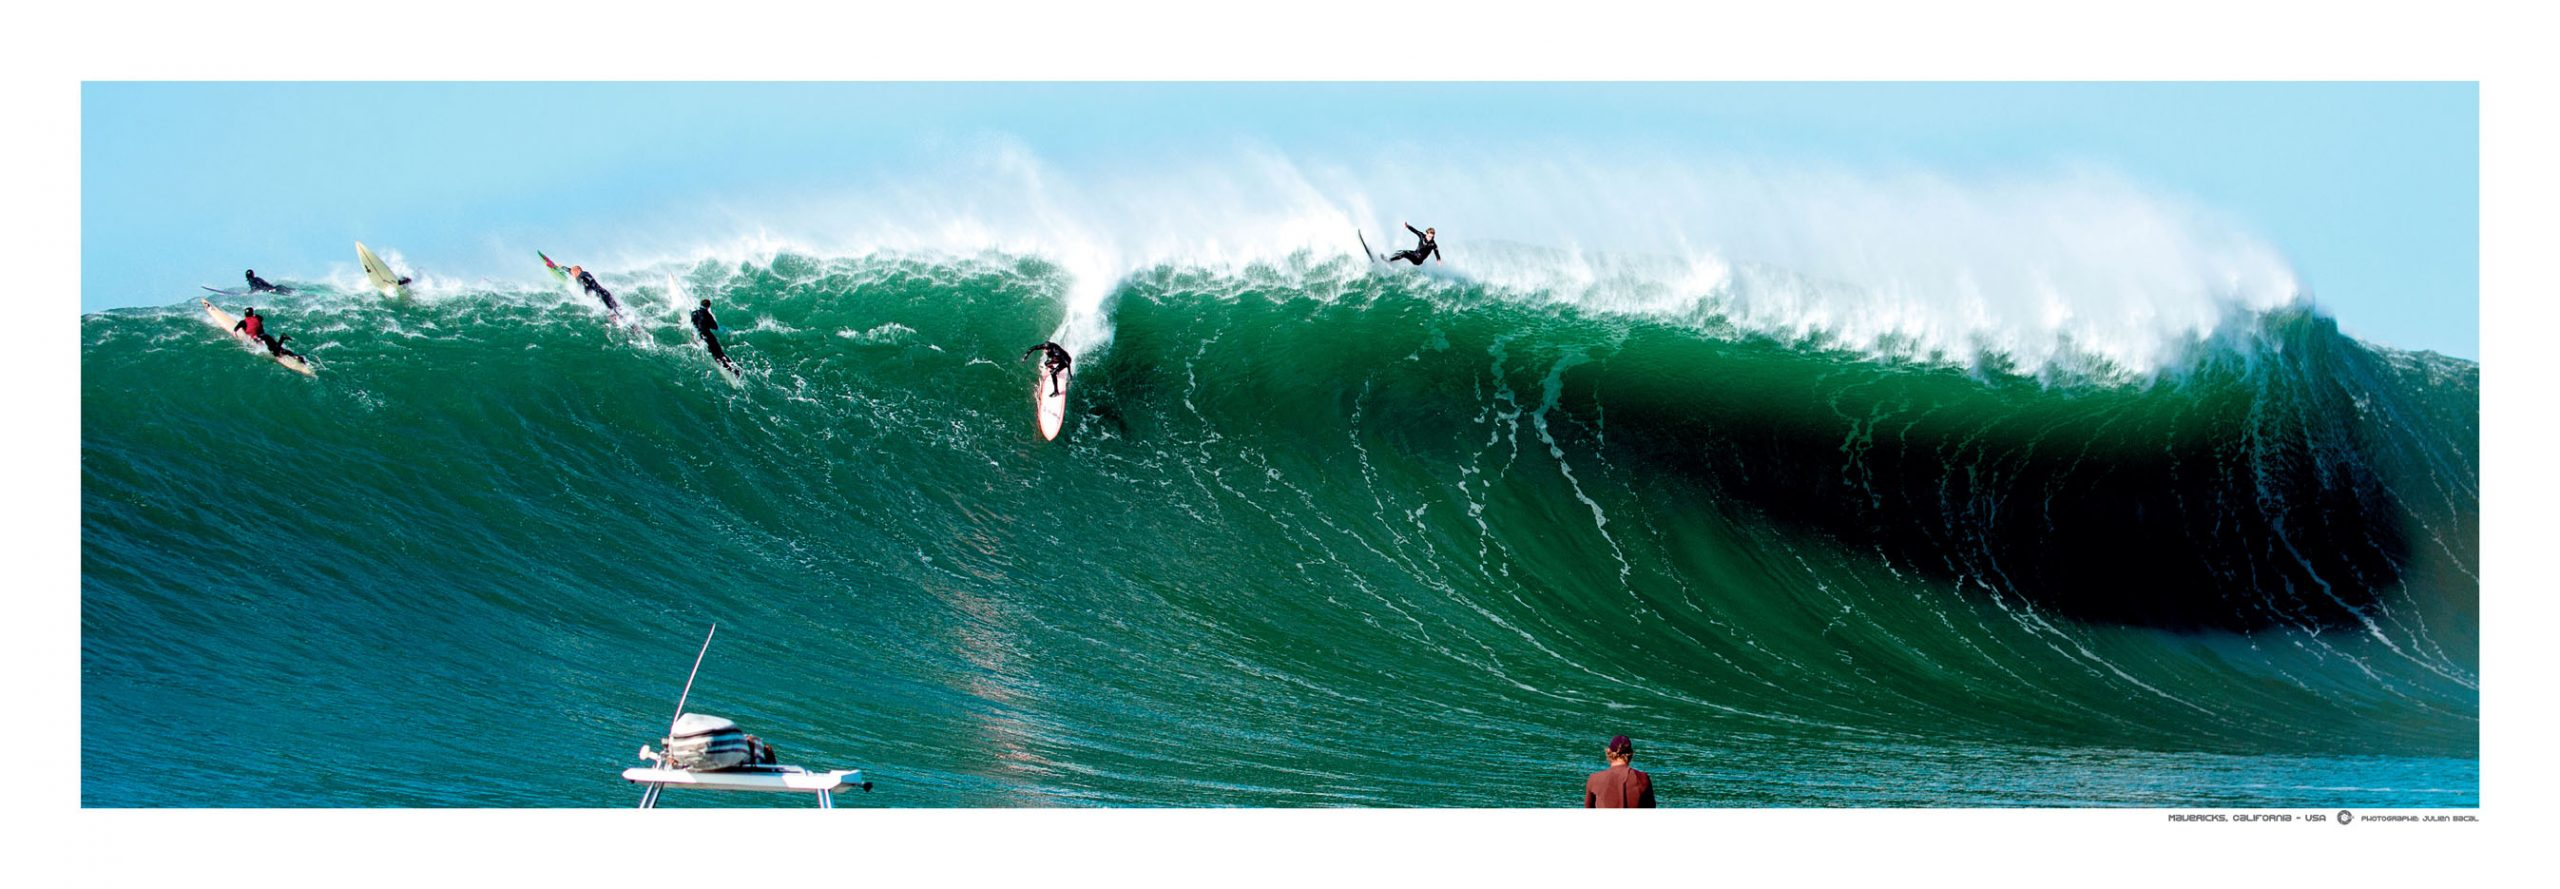 Mavericks California